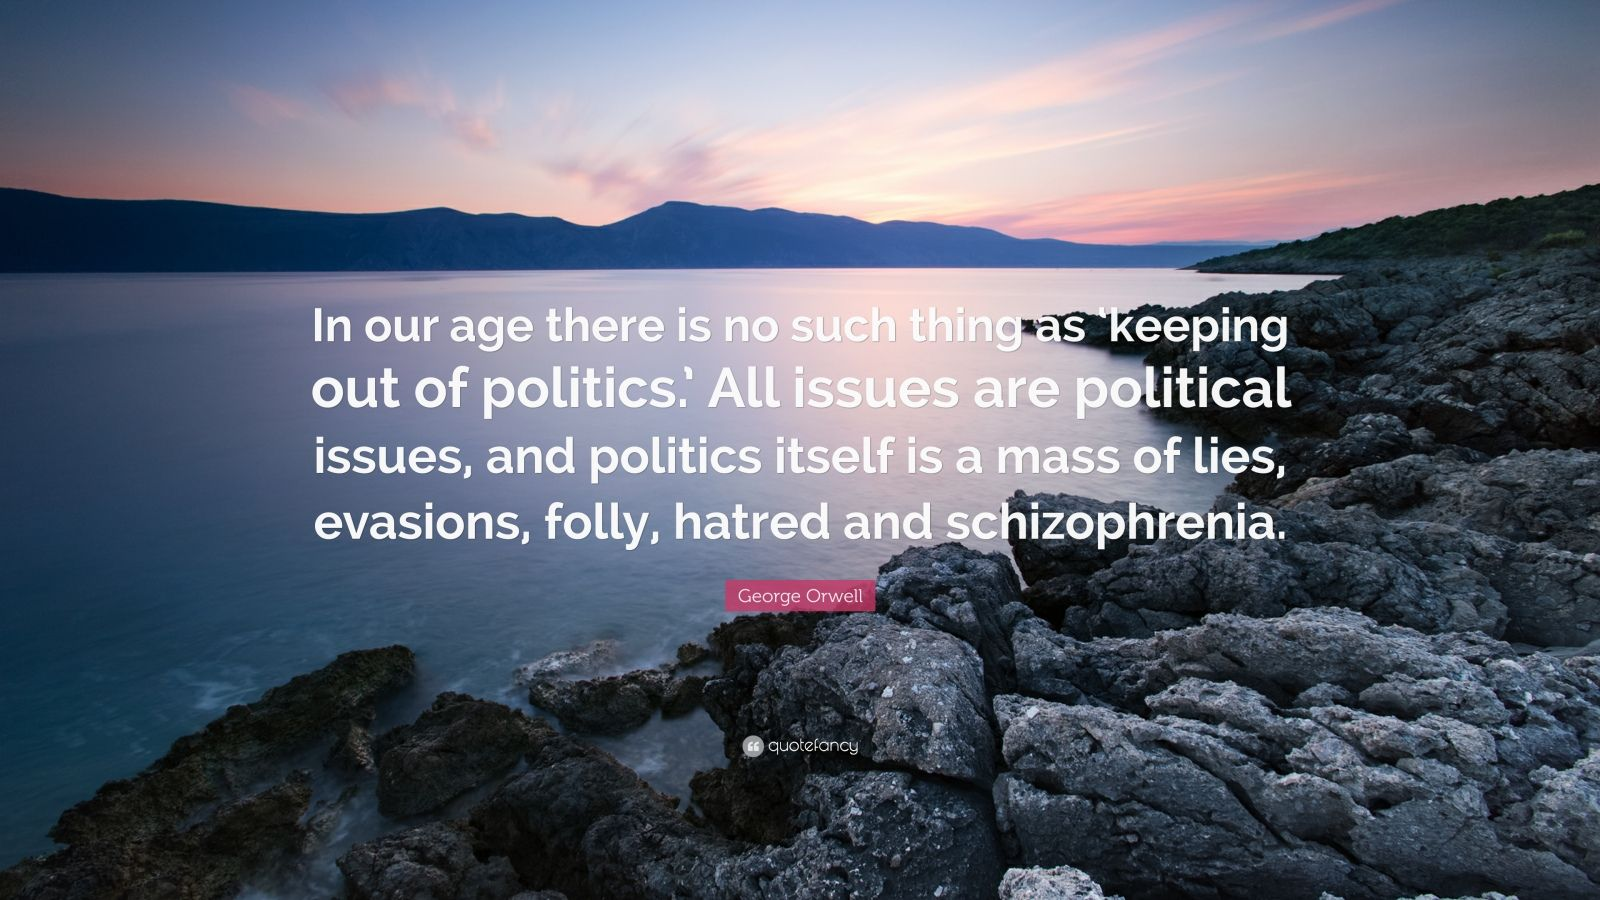 """George Orwell Quote: """"In our age there is no such thing as 'keeping out of politics.' All issues are political issues, and politics itself is a mass of lies, evasions, folly, hatred and schizophrenia."""""""